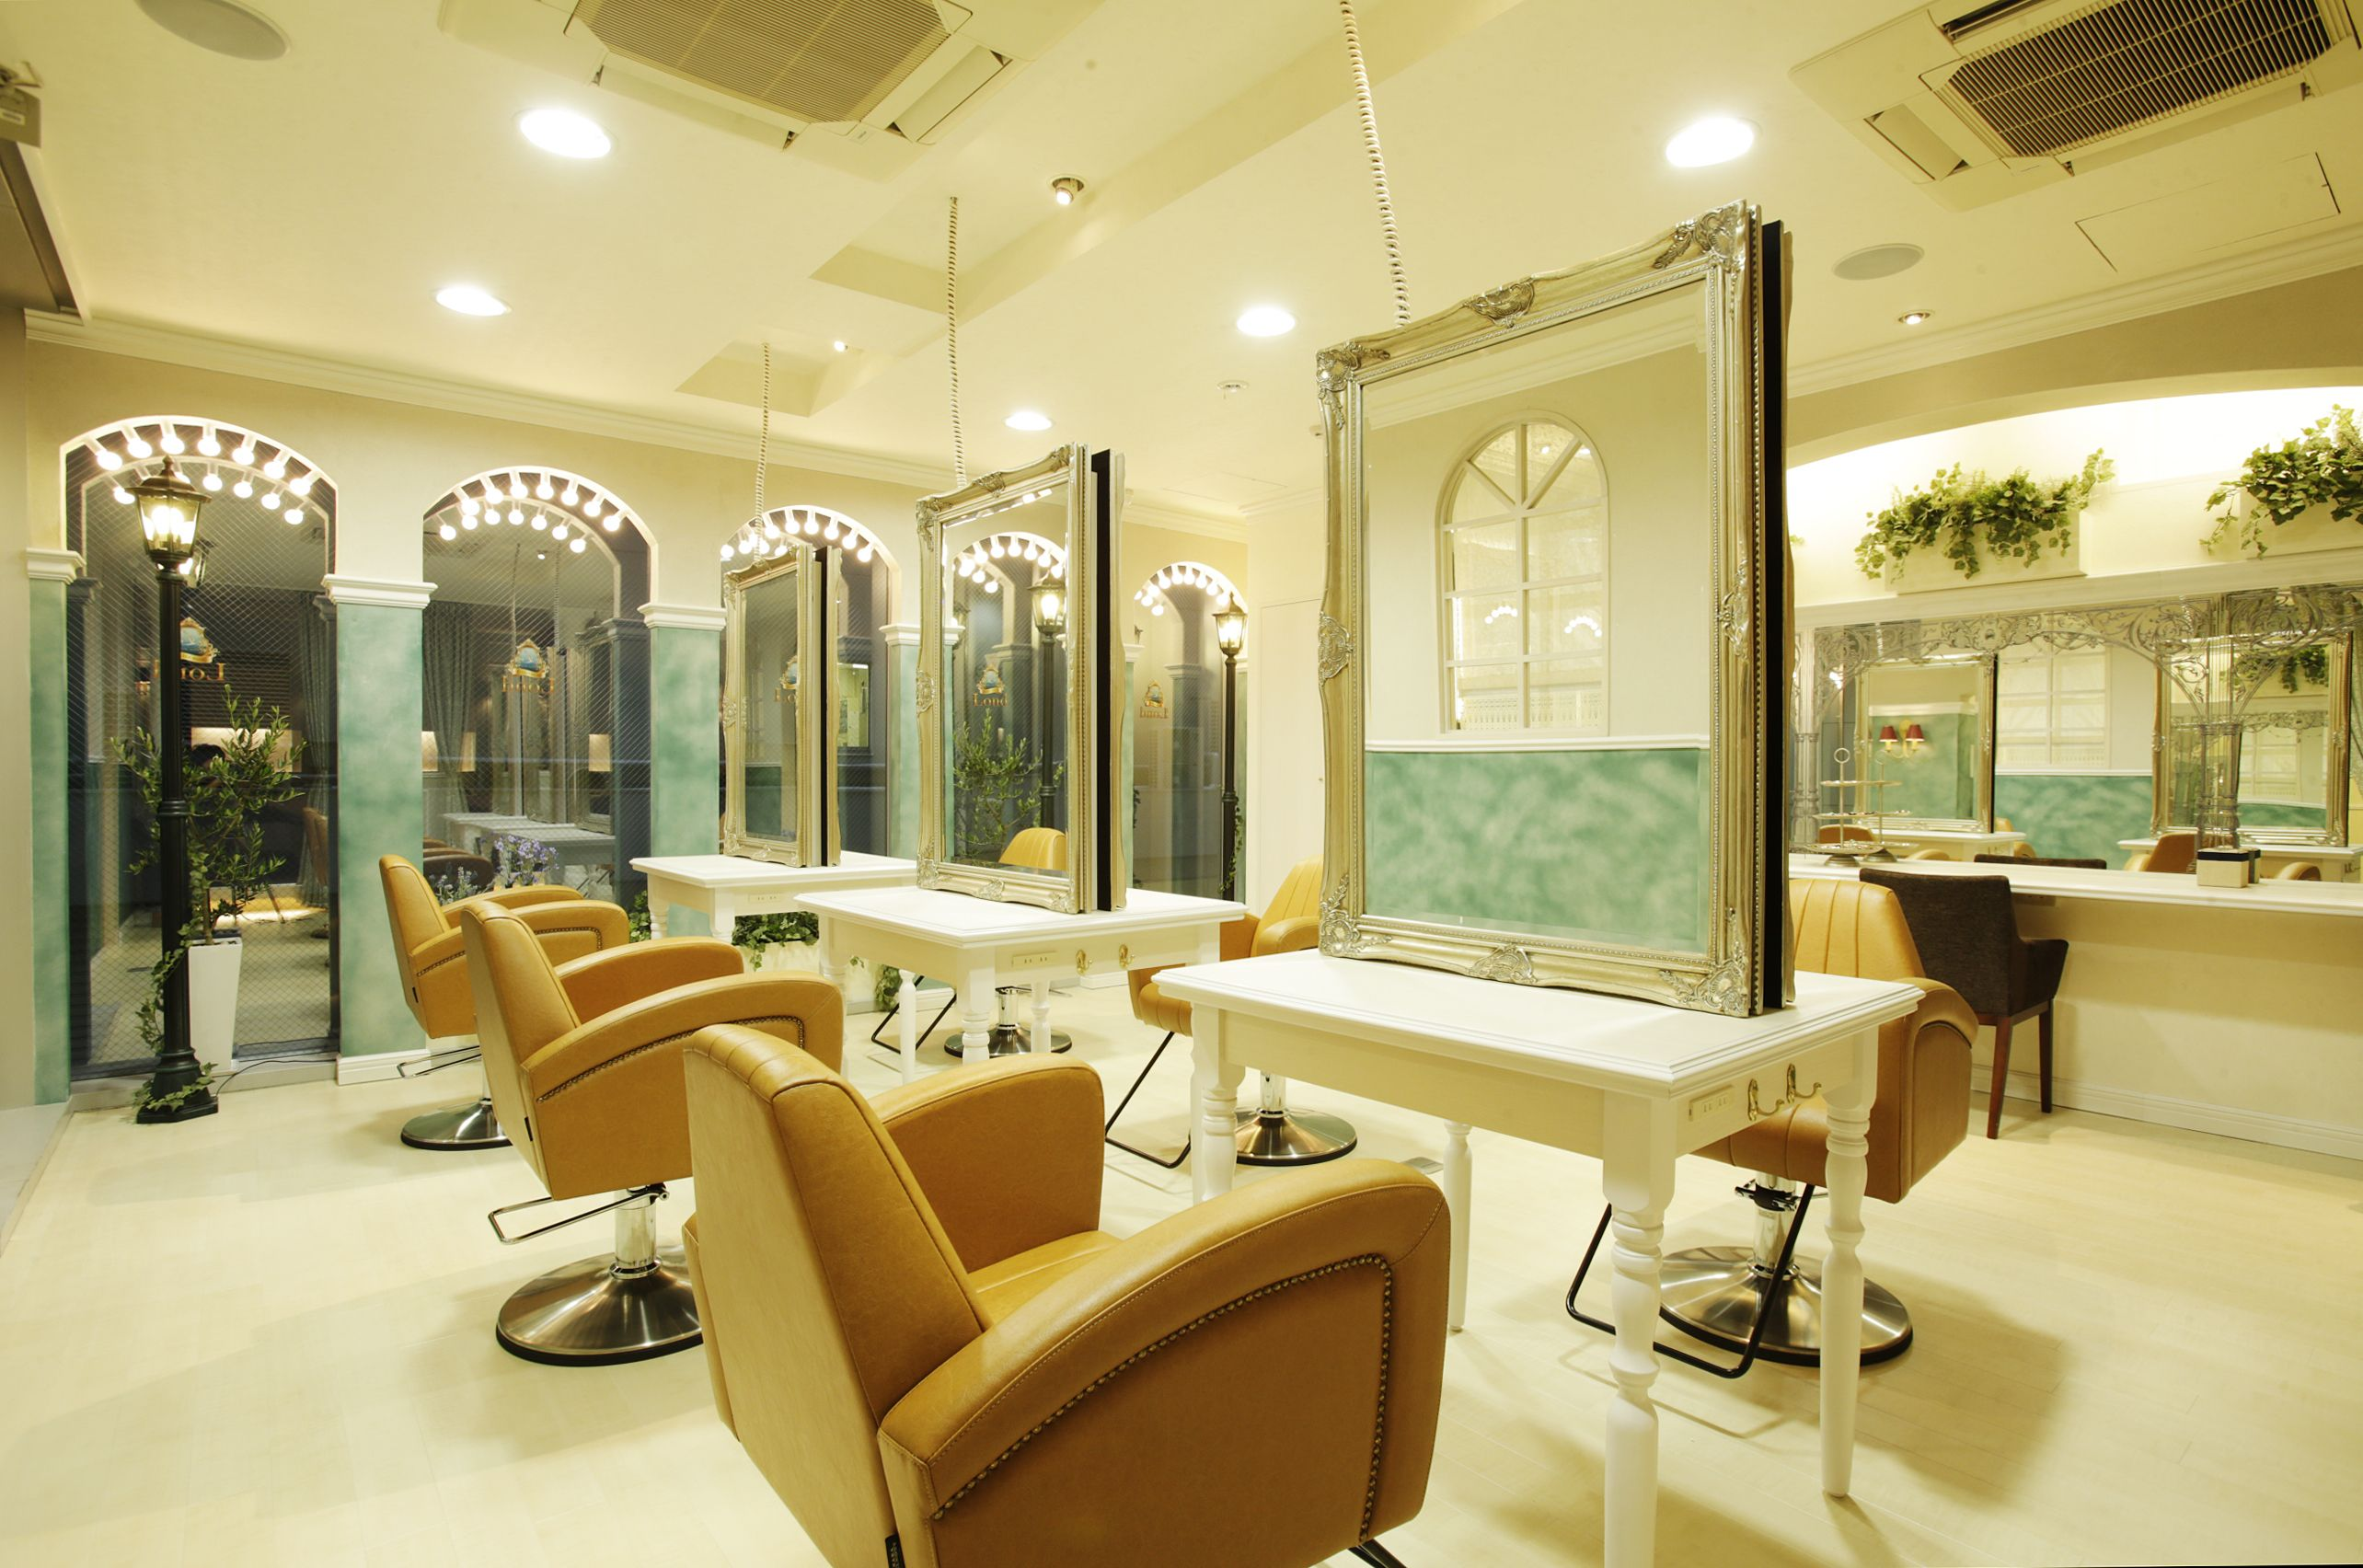 Salons Design Beauty Salon Interior Design Ideas 43 Hair 43 Space